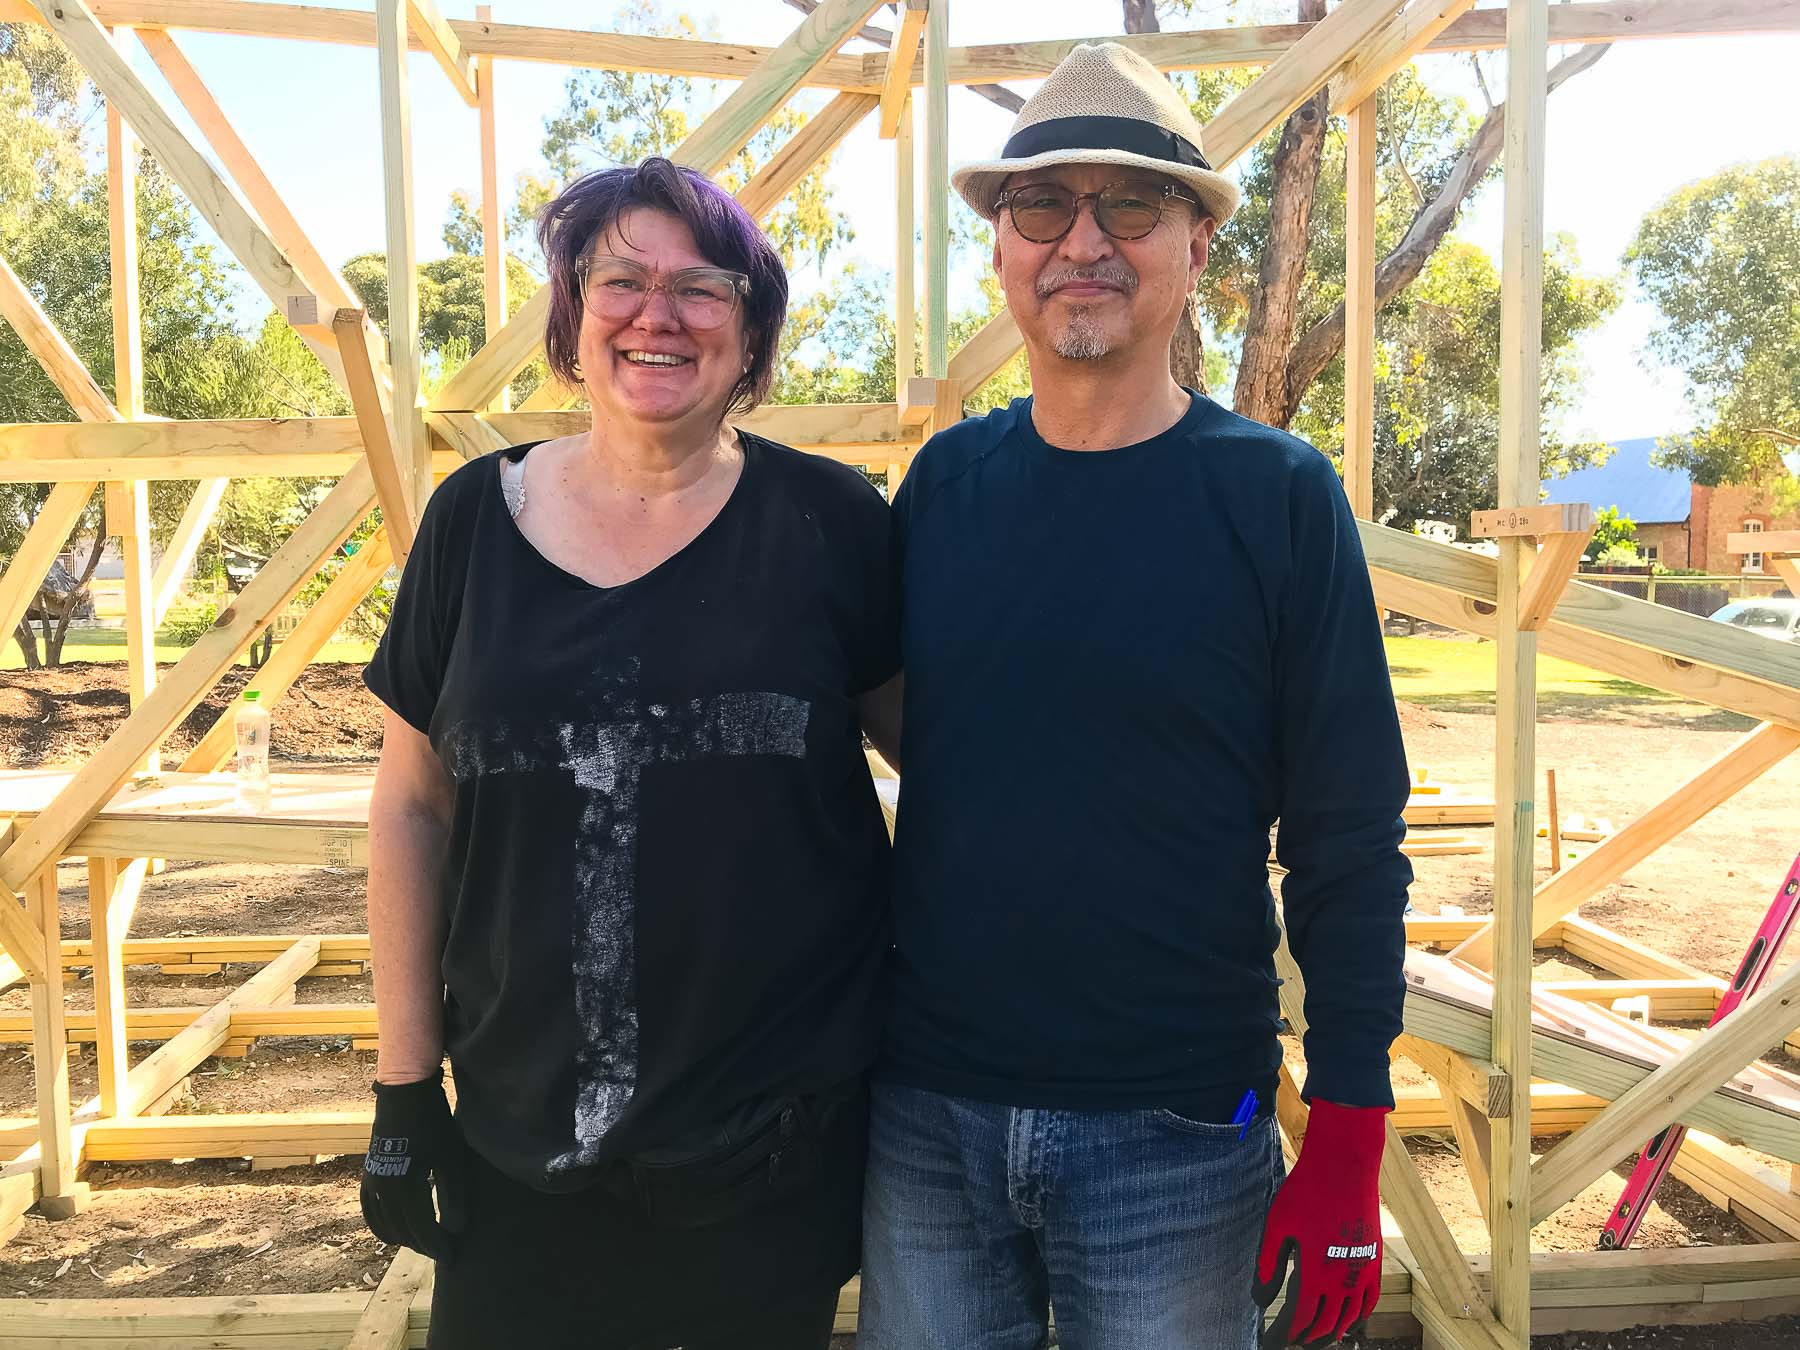 photo of two artists side by side in front of timber framework. Photo by Caro Telfer.